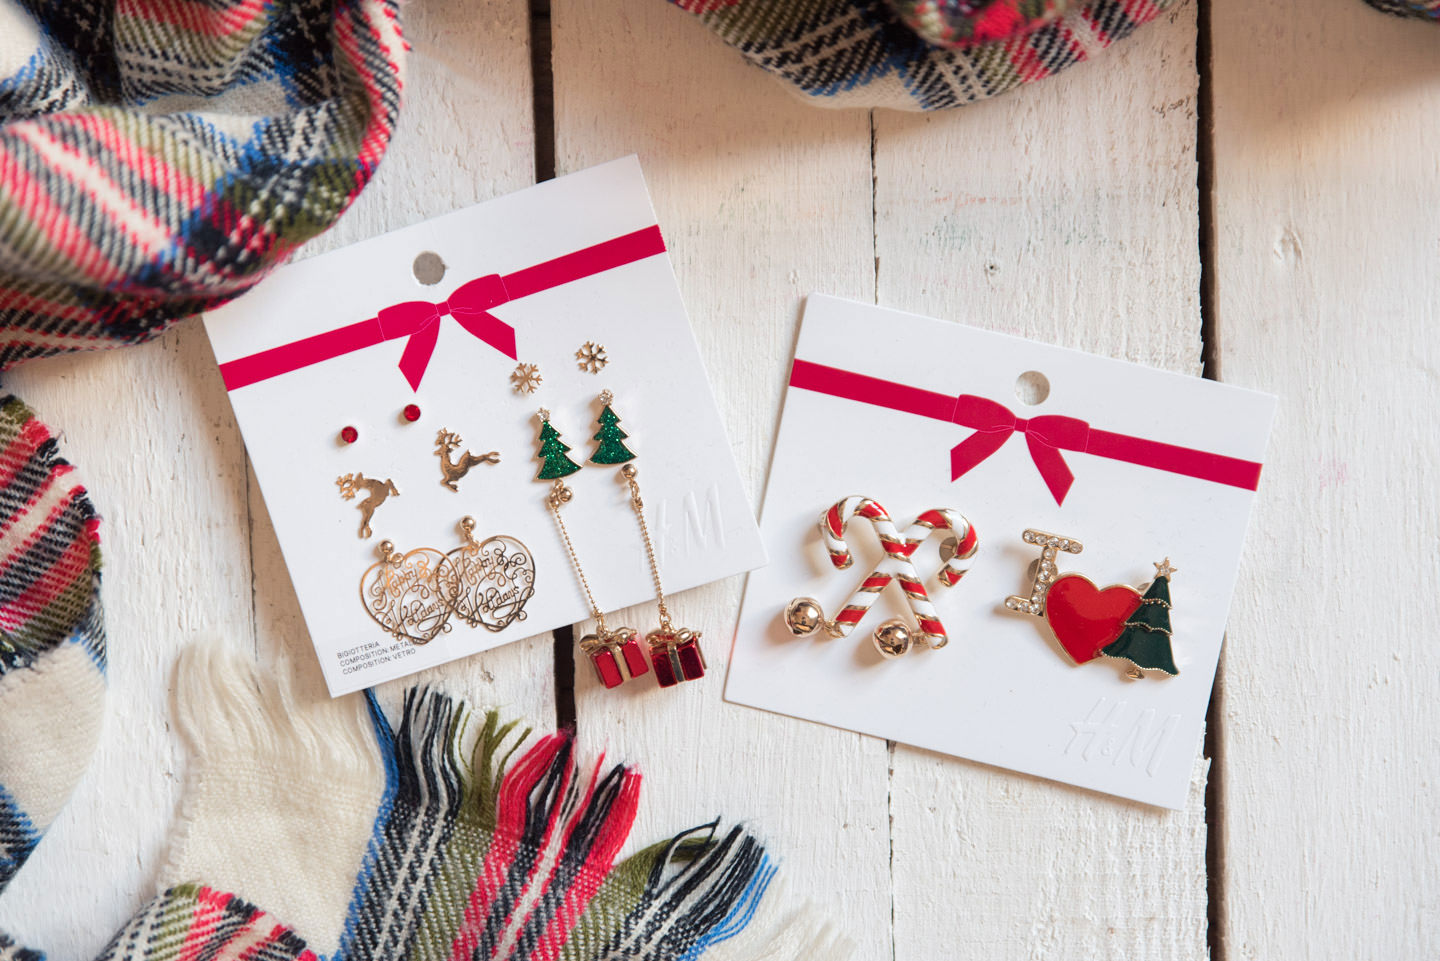 Blog-Mode-And-The-City-Lifestyle-Cinq-Petites-Choses-238-broches-noel-hm-2